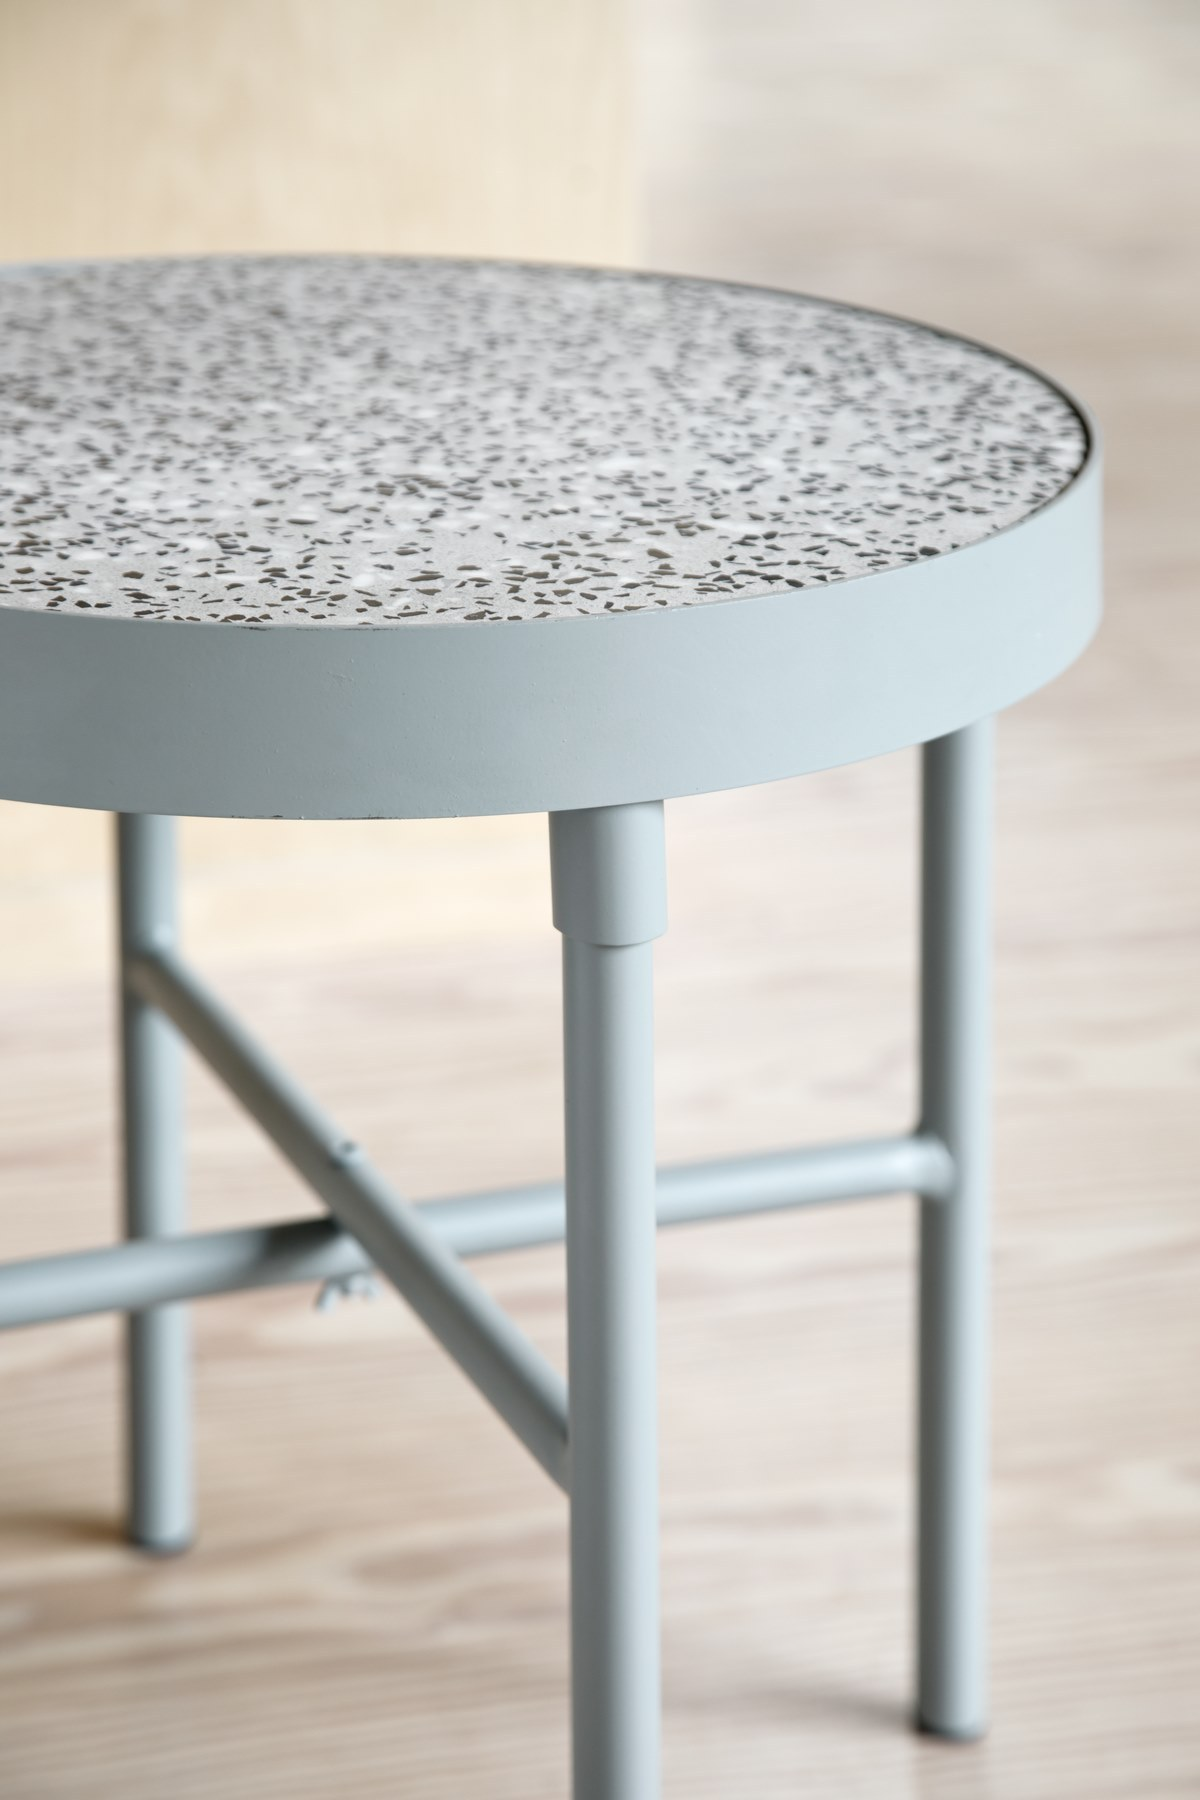 - objets & mobiliers